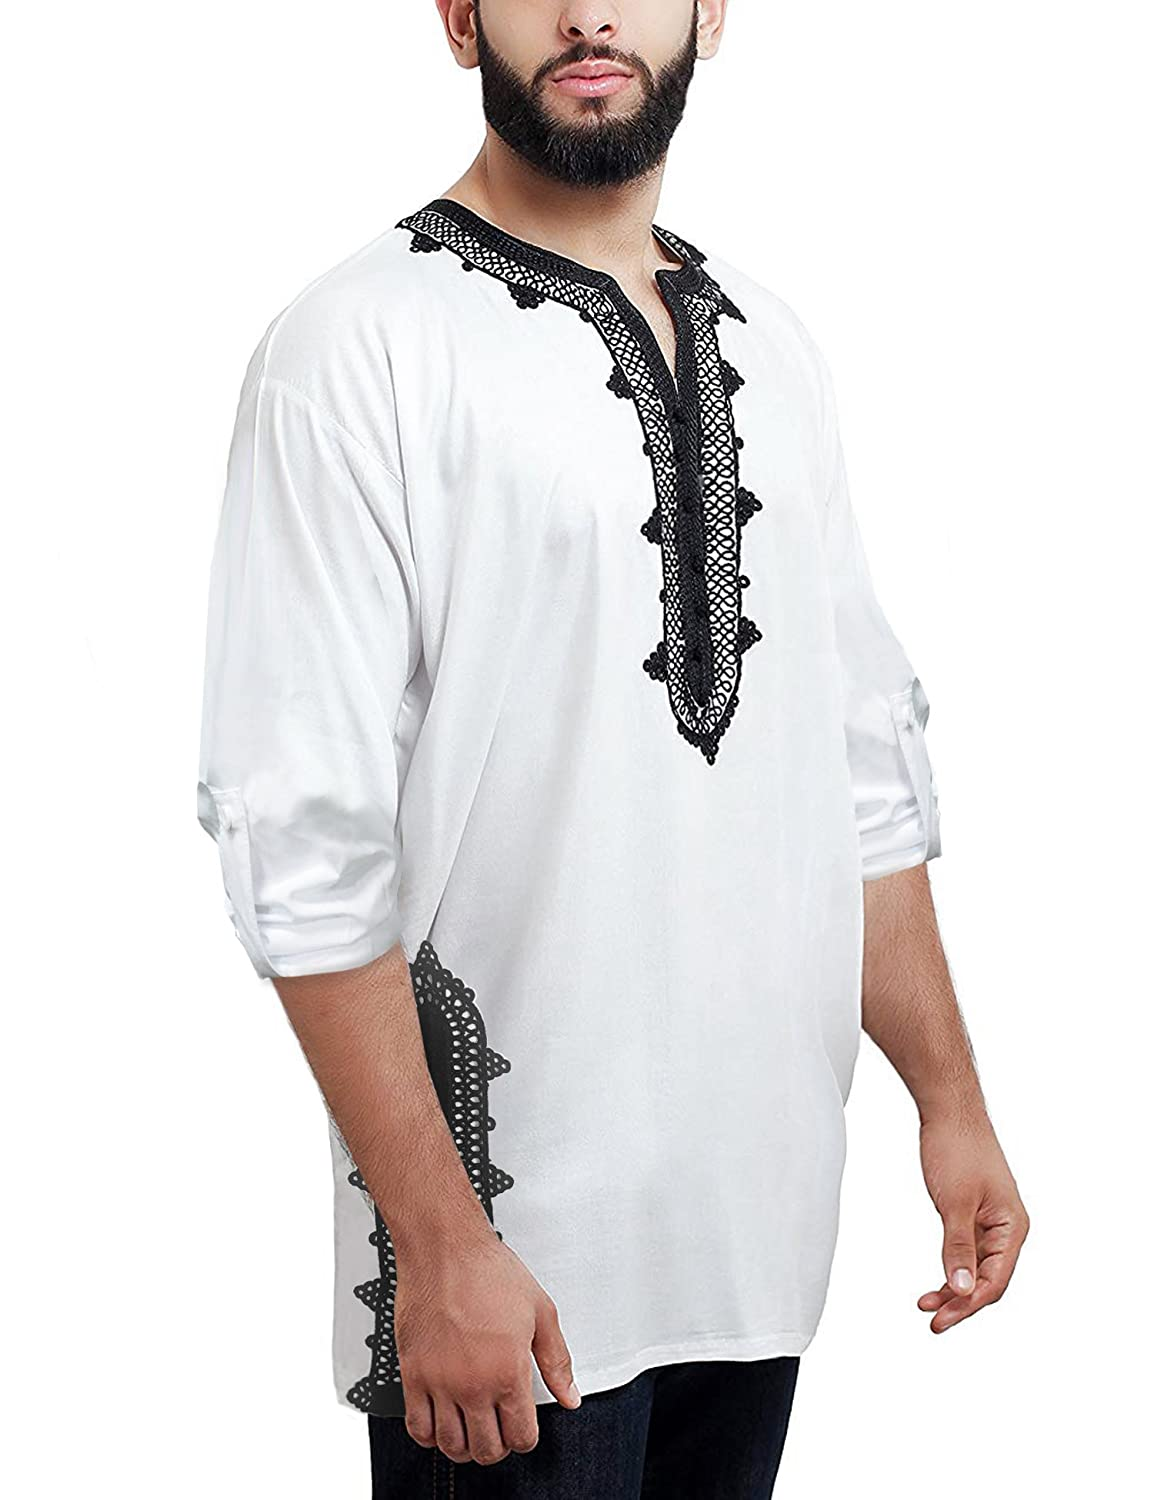 Daupanzees Men Tunic T-Shirt Caftan Shirt Breathable Polyester Fiber Handmade Embroidery Ethnic Tops Tee